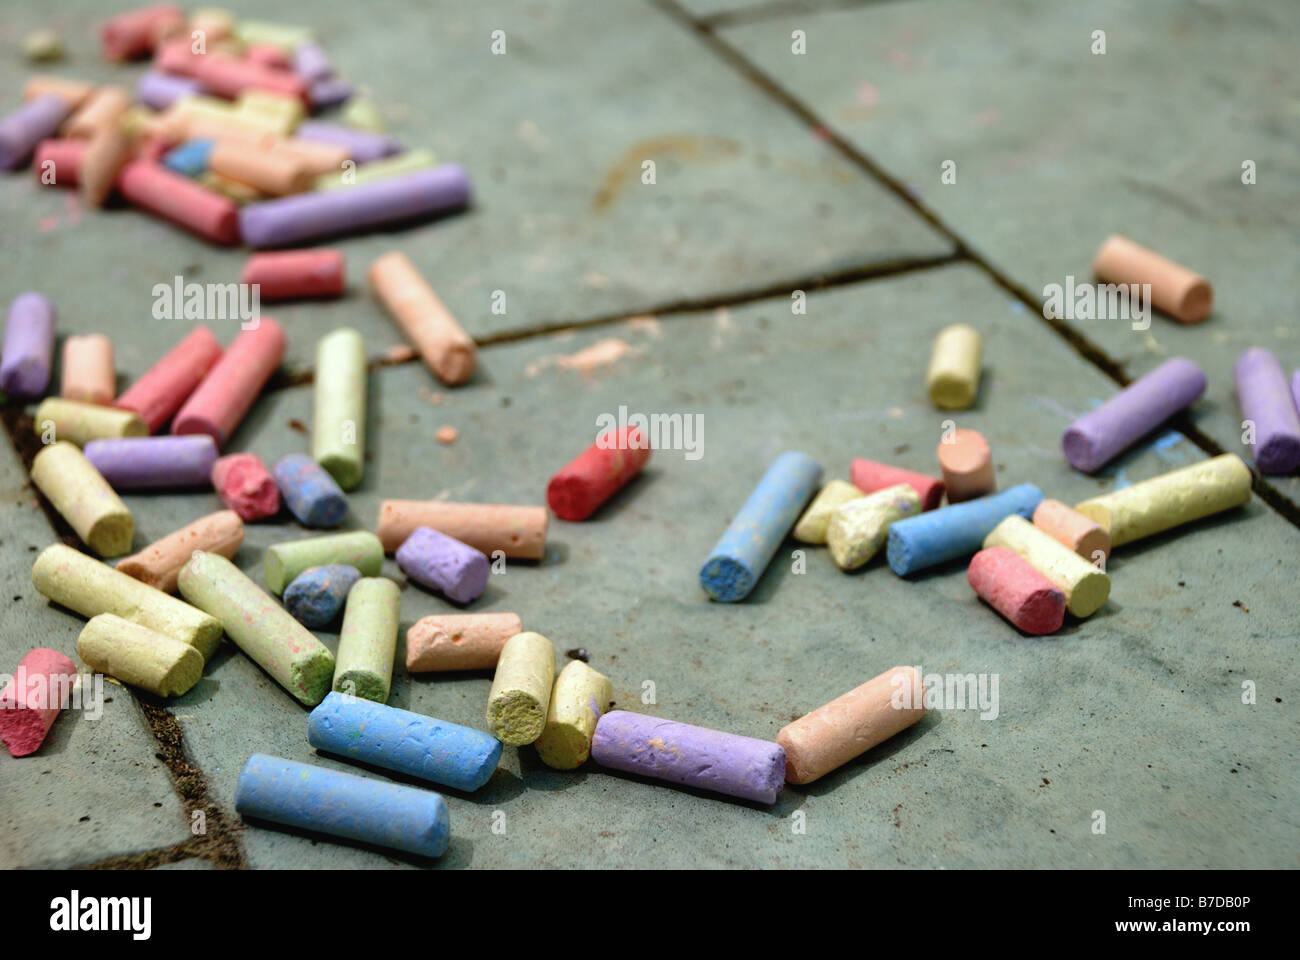 Pieces of coloured chalk scattered on a paved ground, in shallow focus. - Stock Image